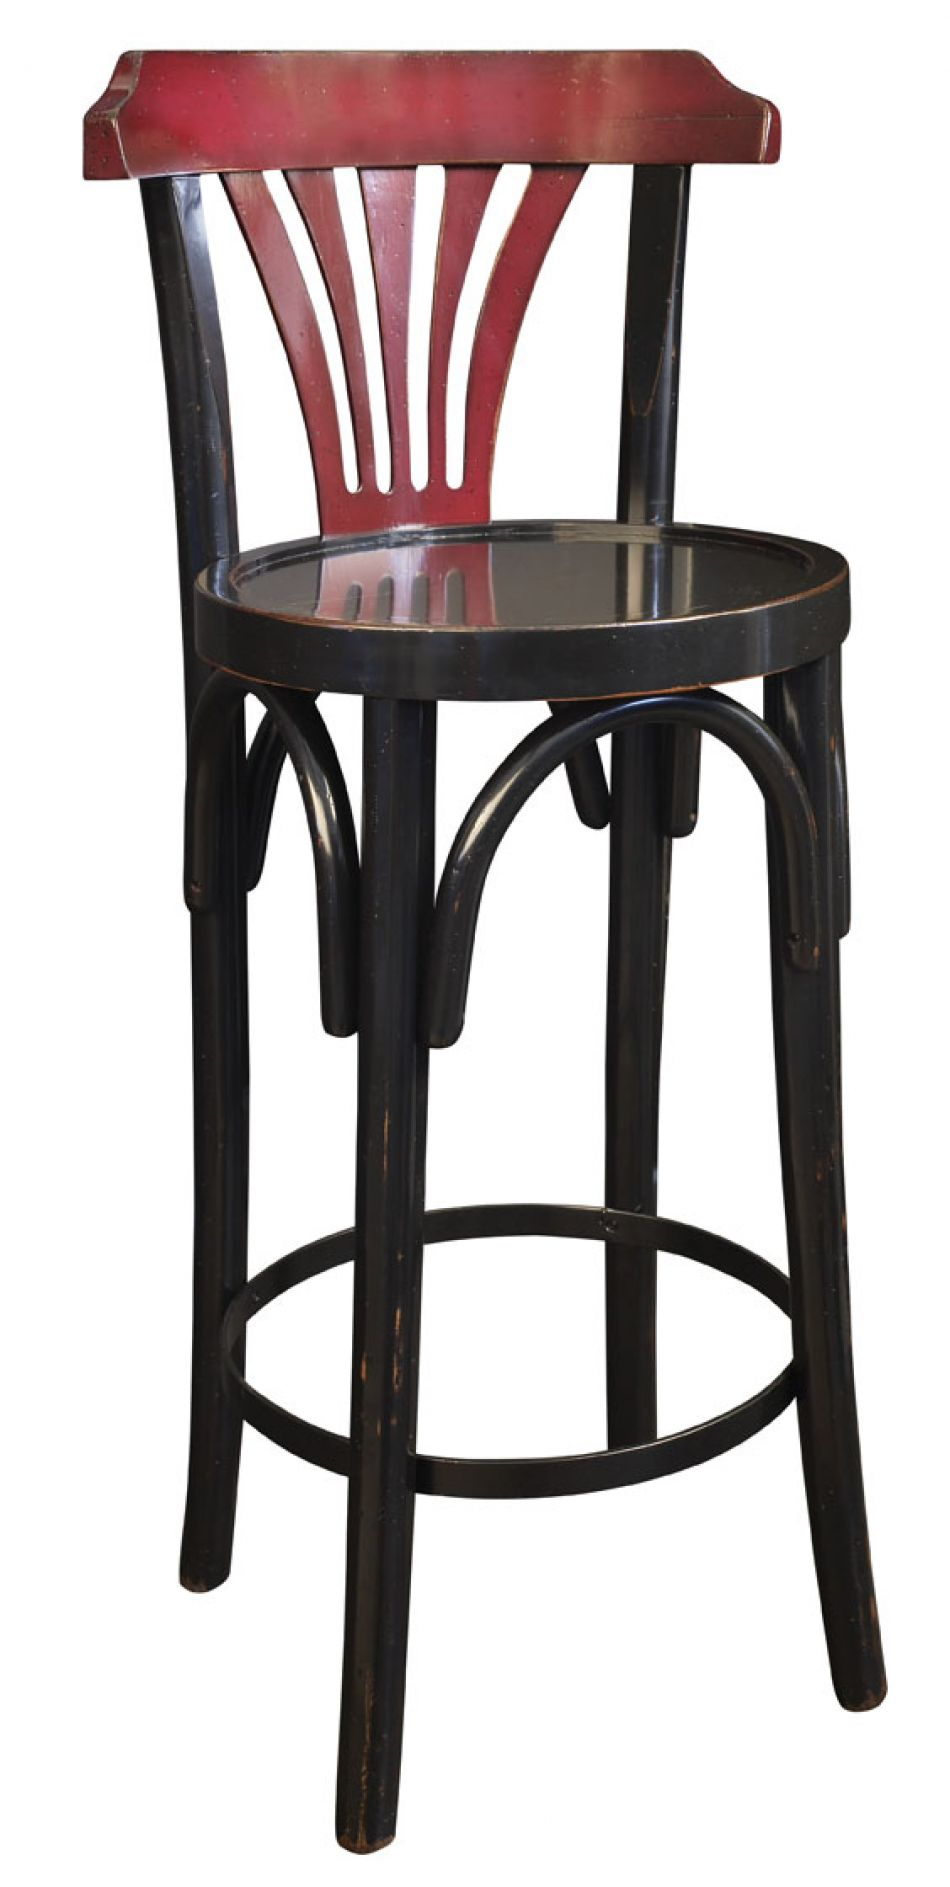 Buy Navy Bar Stool De Luxe 40 Inch Coastal Living : MF044Lo from www.handcraftedsealifedecor.com size 950 x 1887 jpeg 113kB